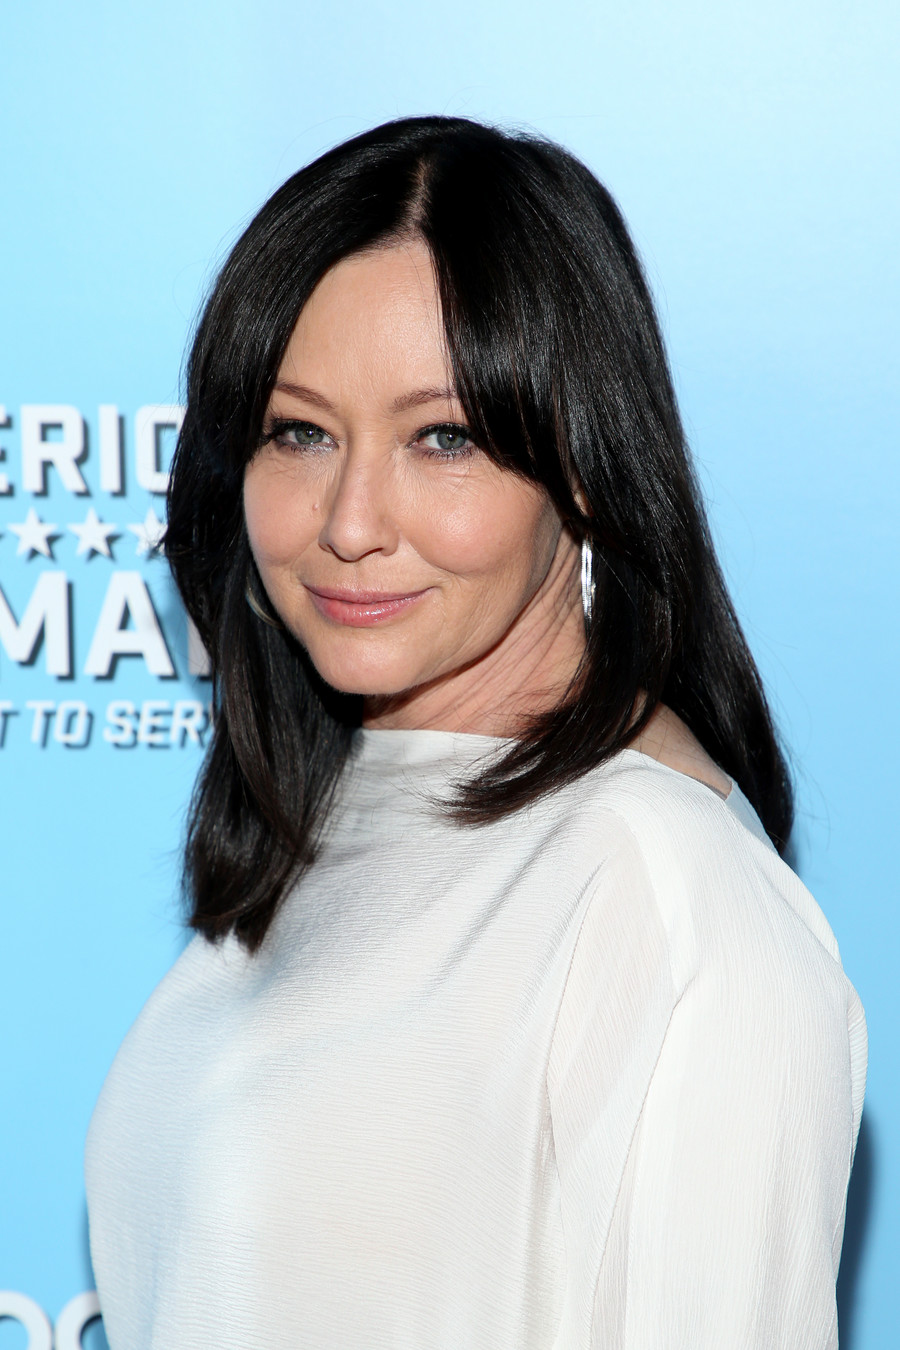 Shannen Doherty, 2019 / Phillip Faraone / GettyImages